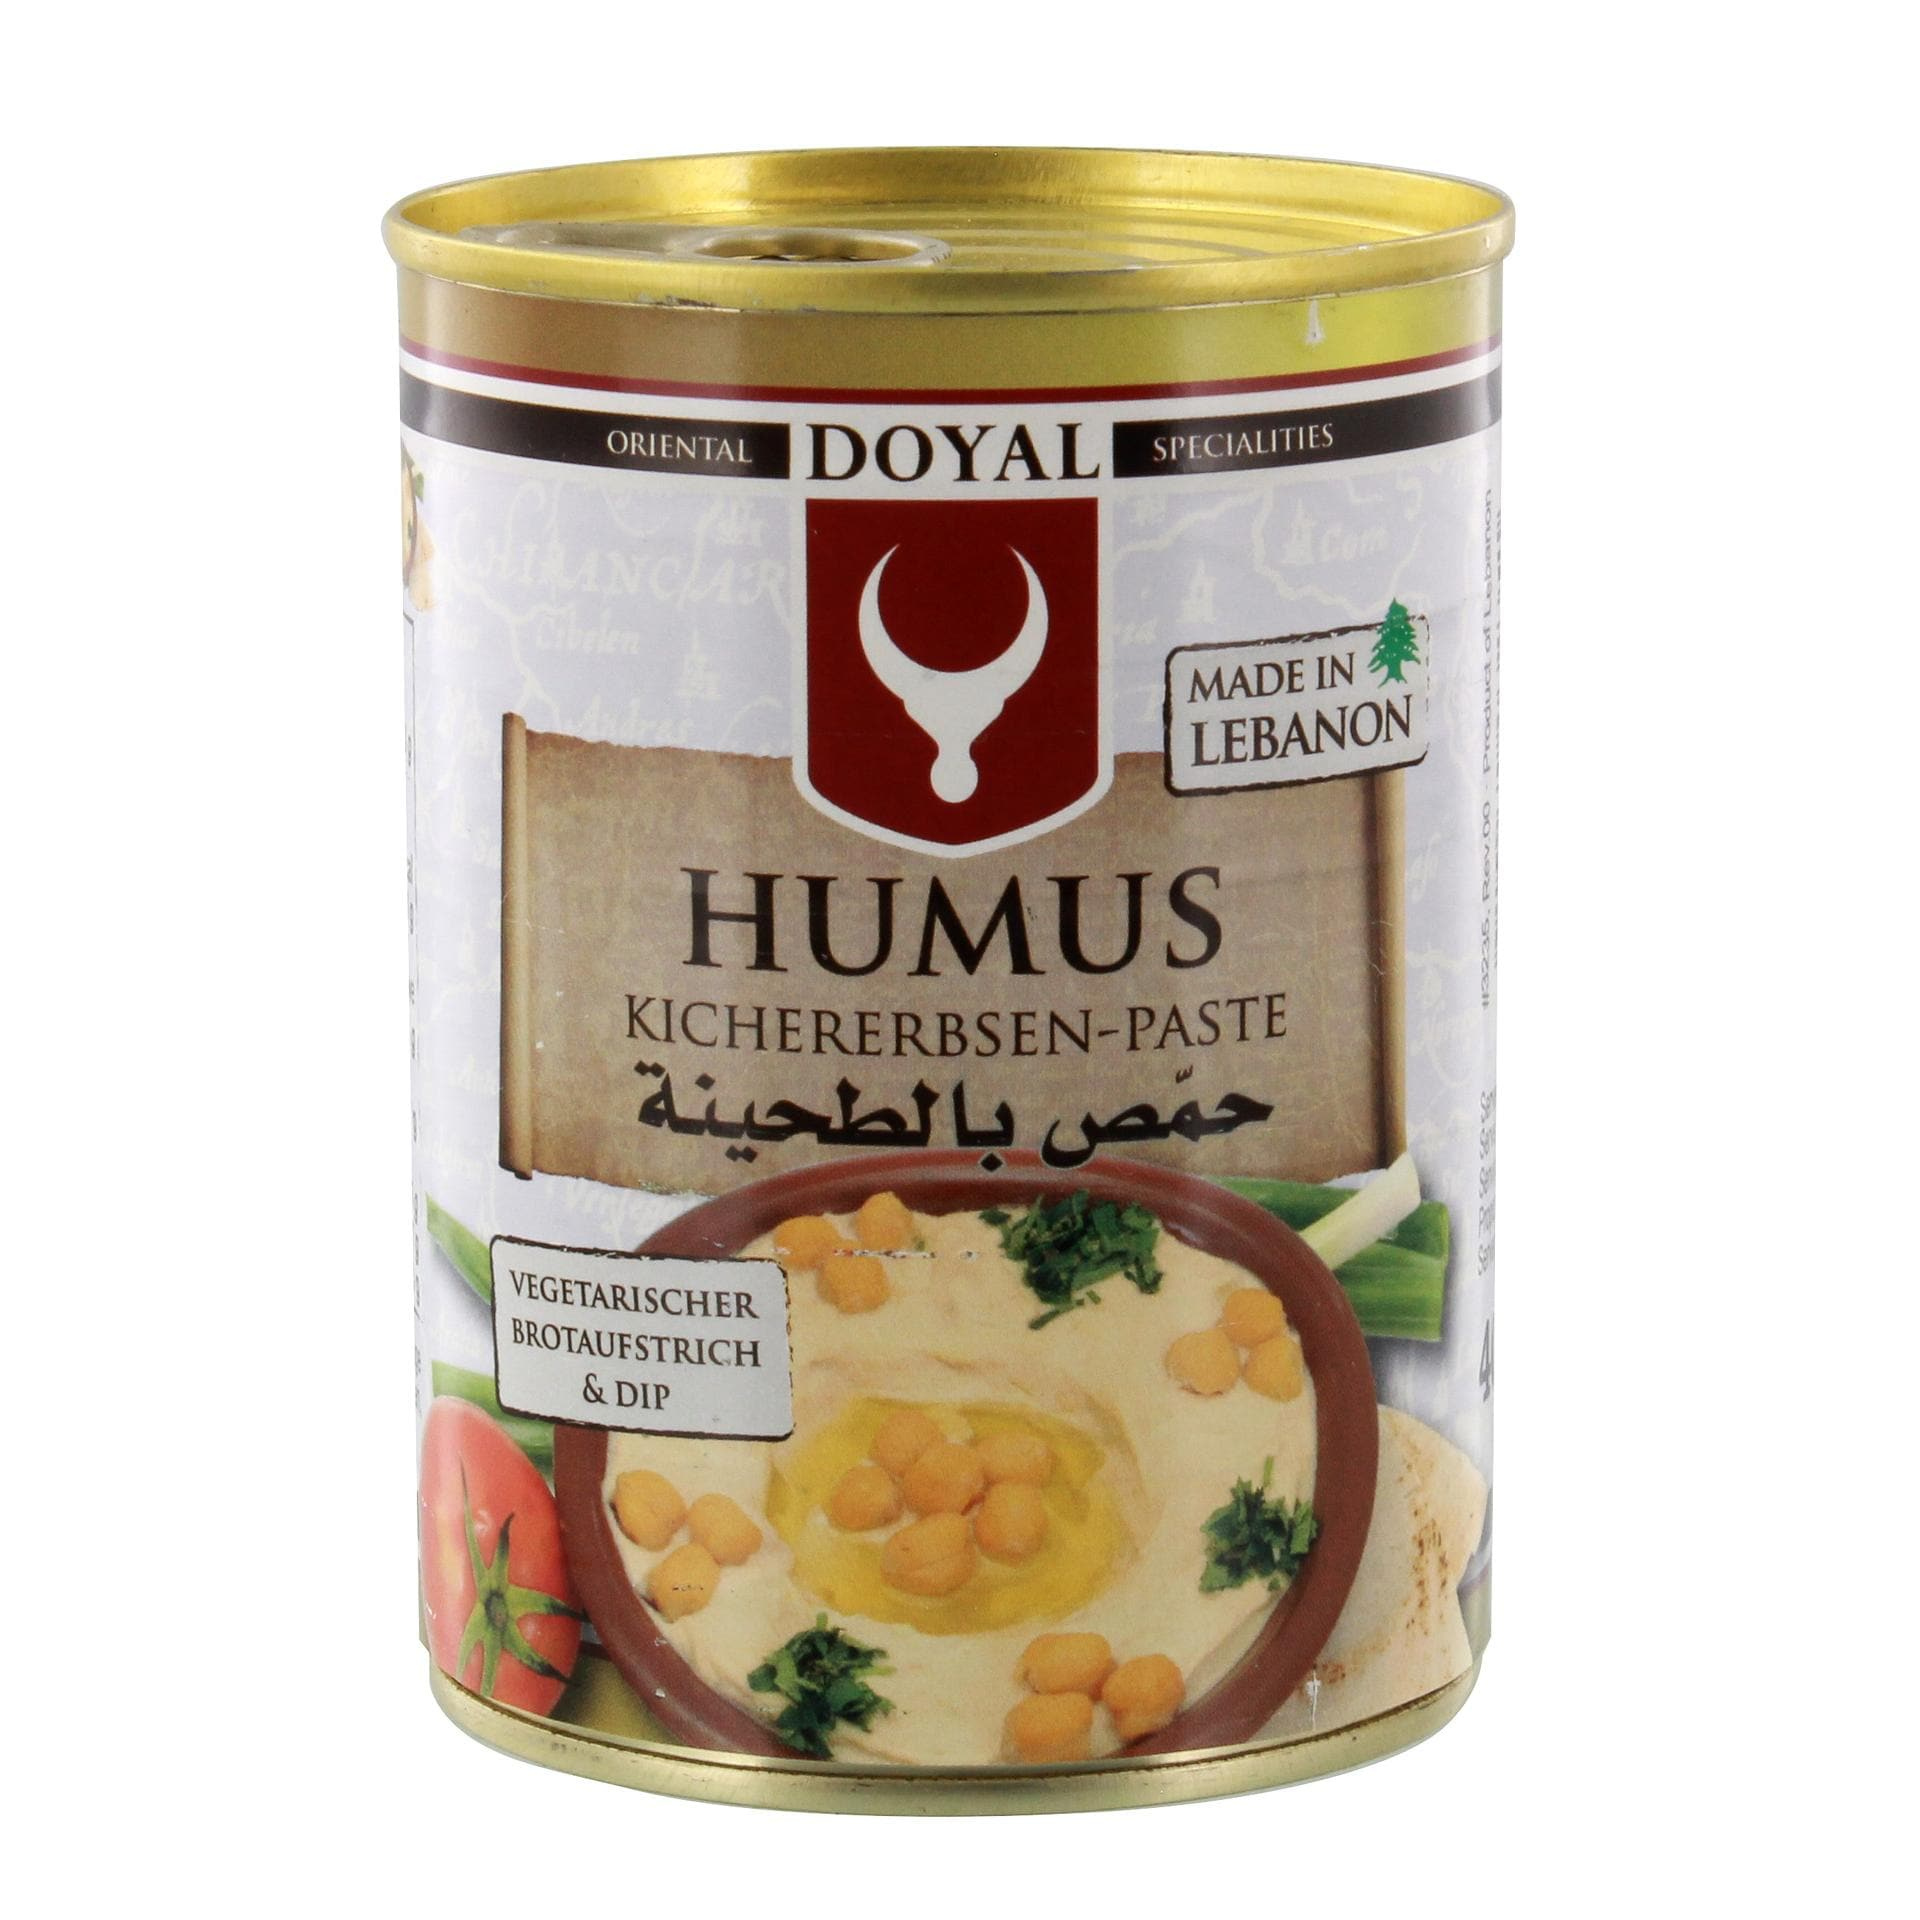 Doyal - Humus Kichererbsen-Paste - 400g